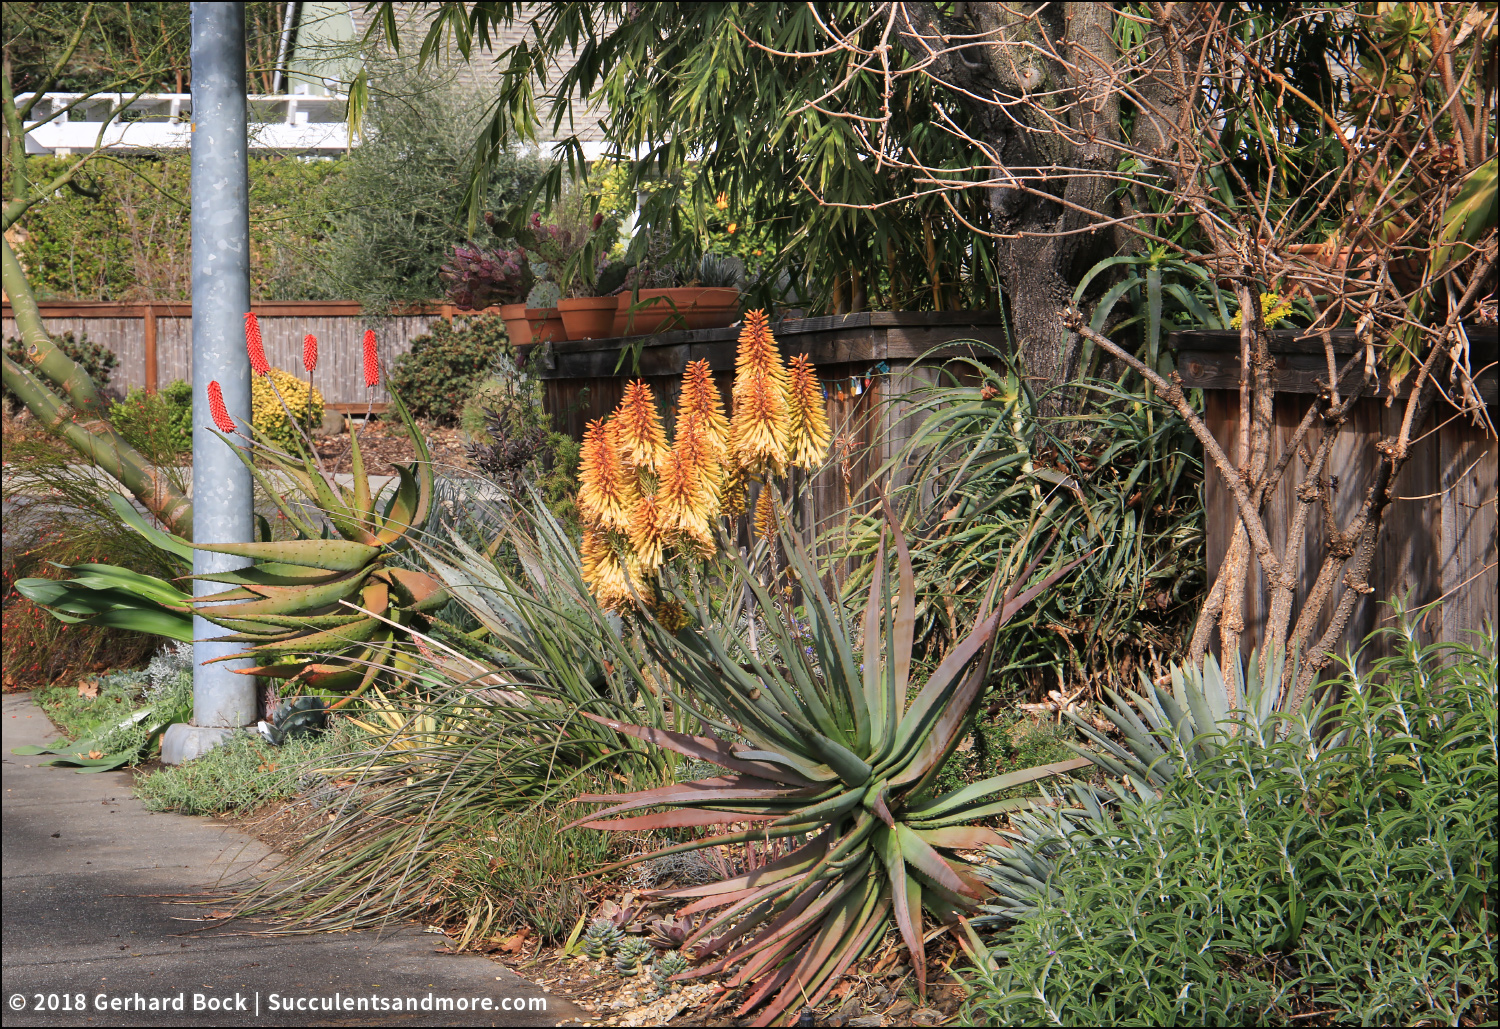 Succulents and More: Our aloes are finally flowering—and how!